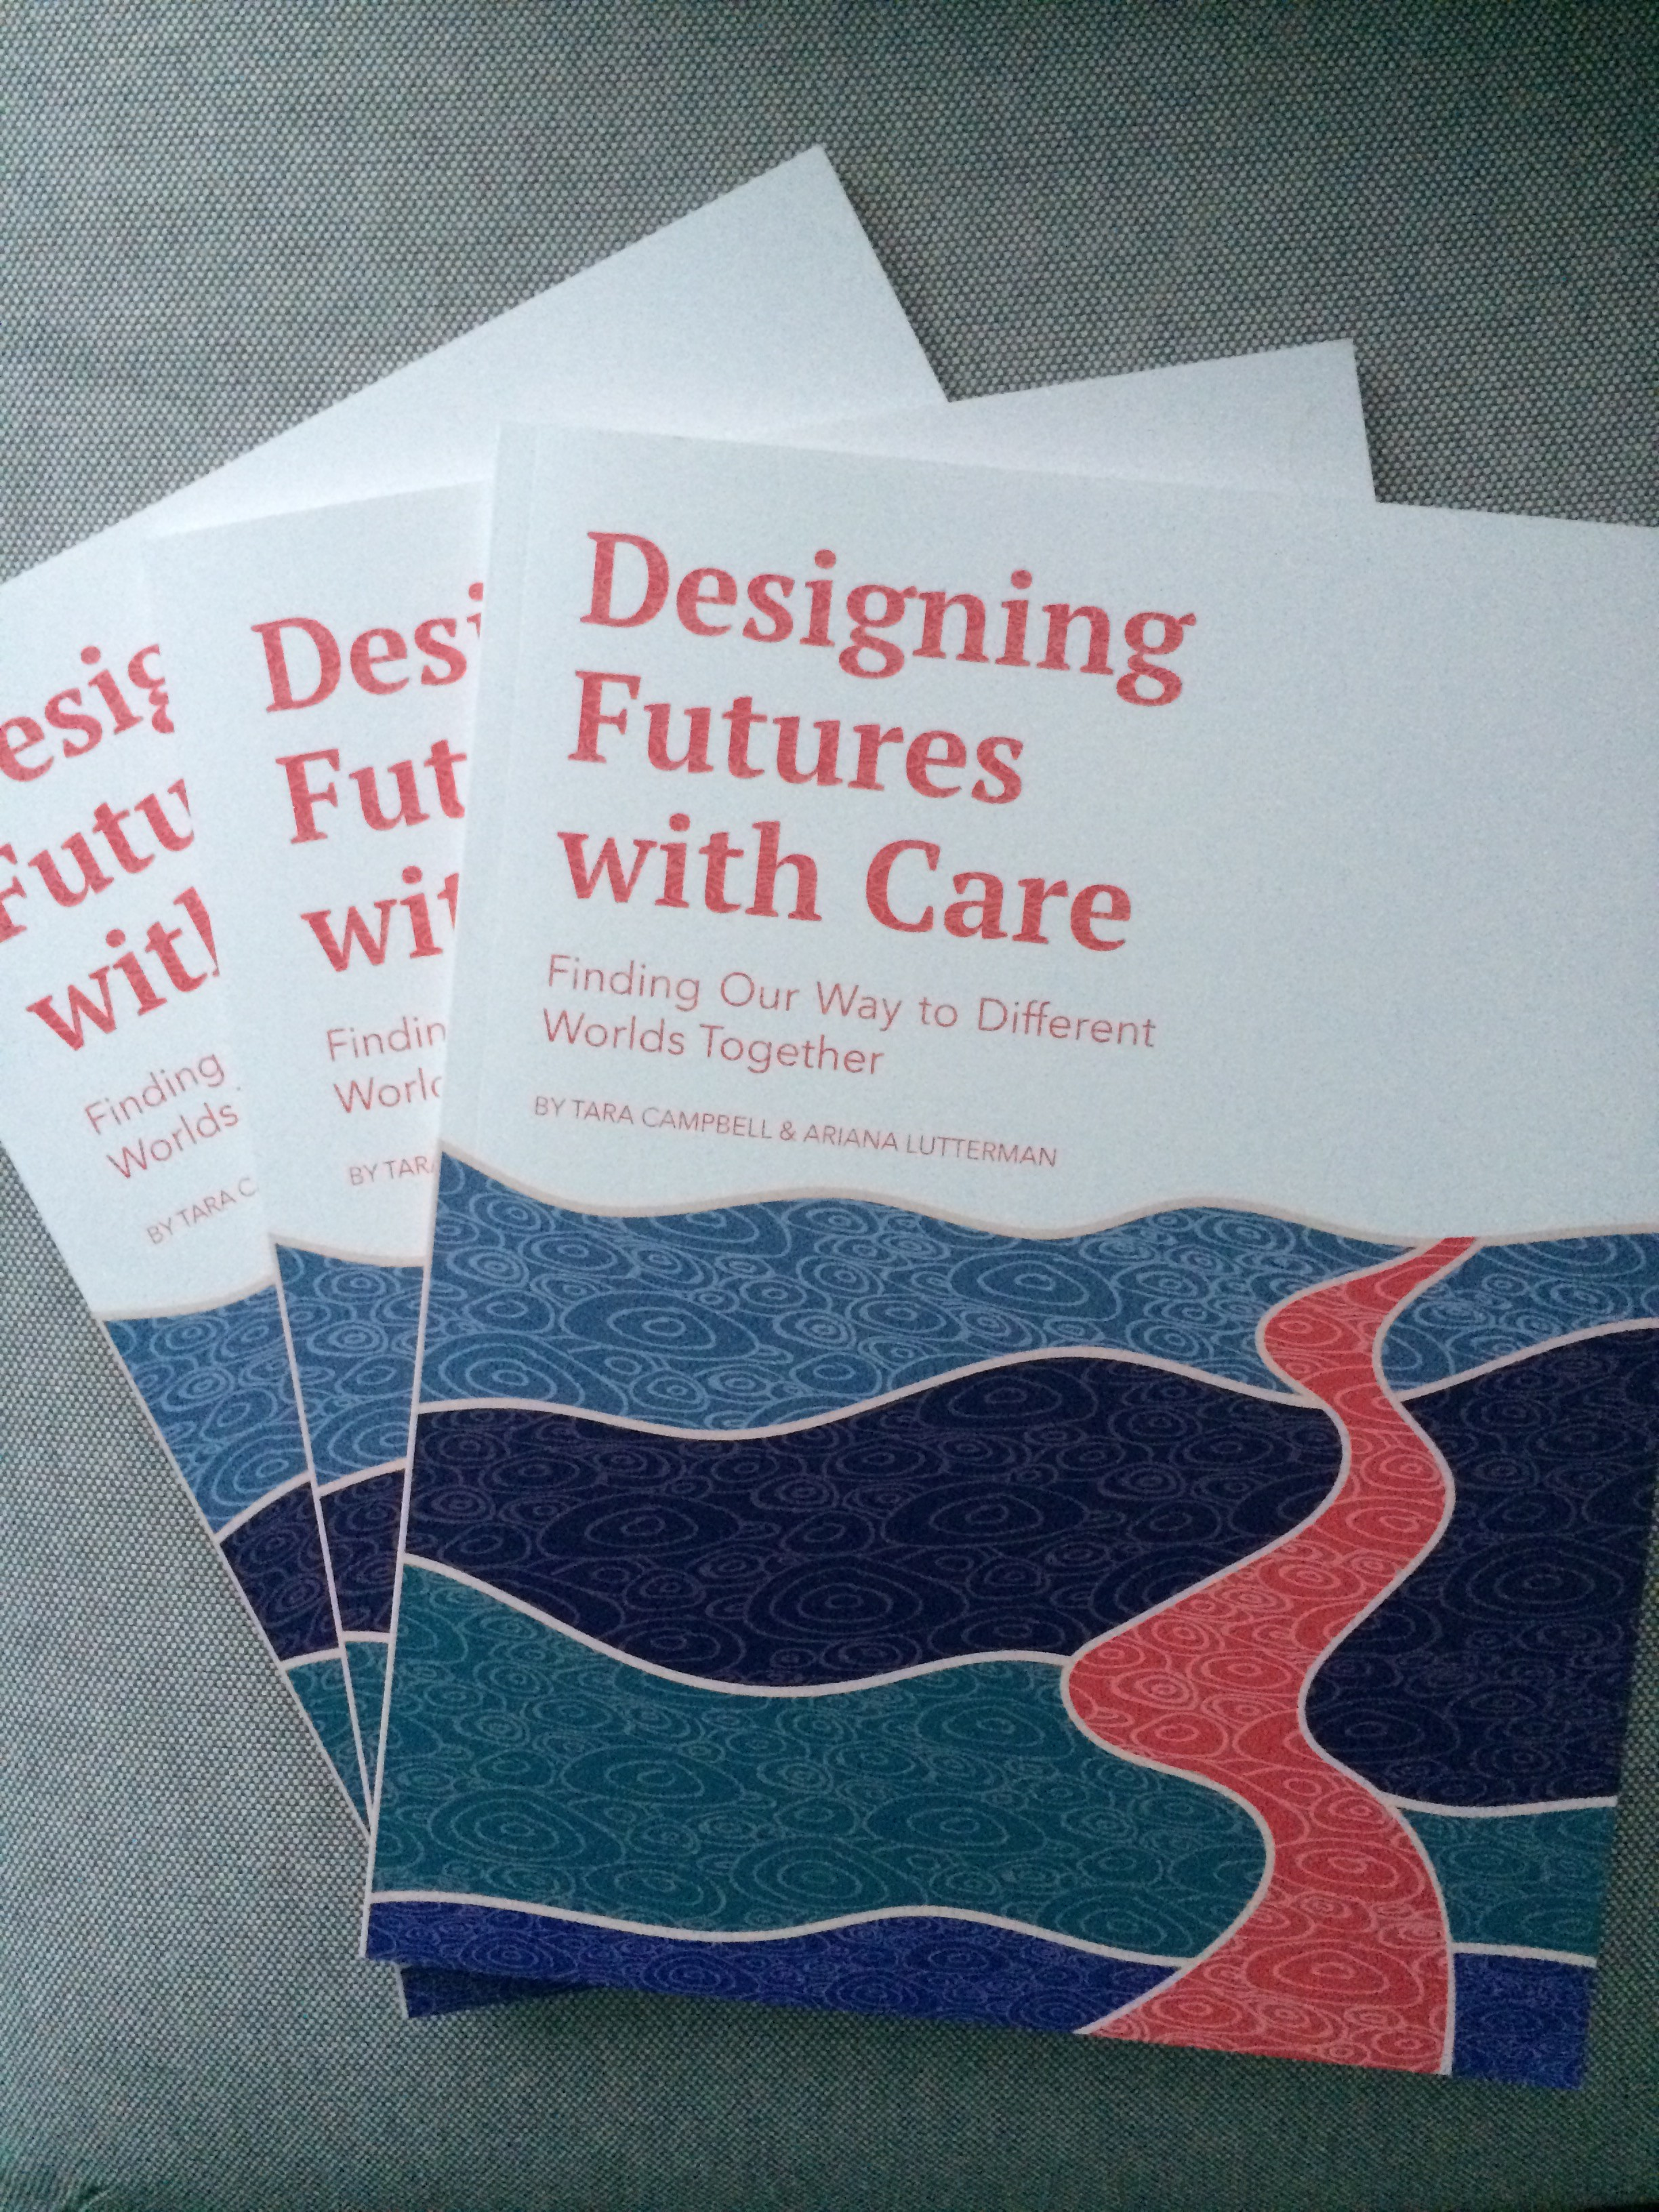 Designing Futures with Care: Finding Our Way to Different Worlds Together